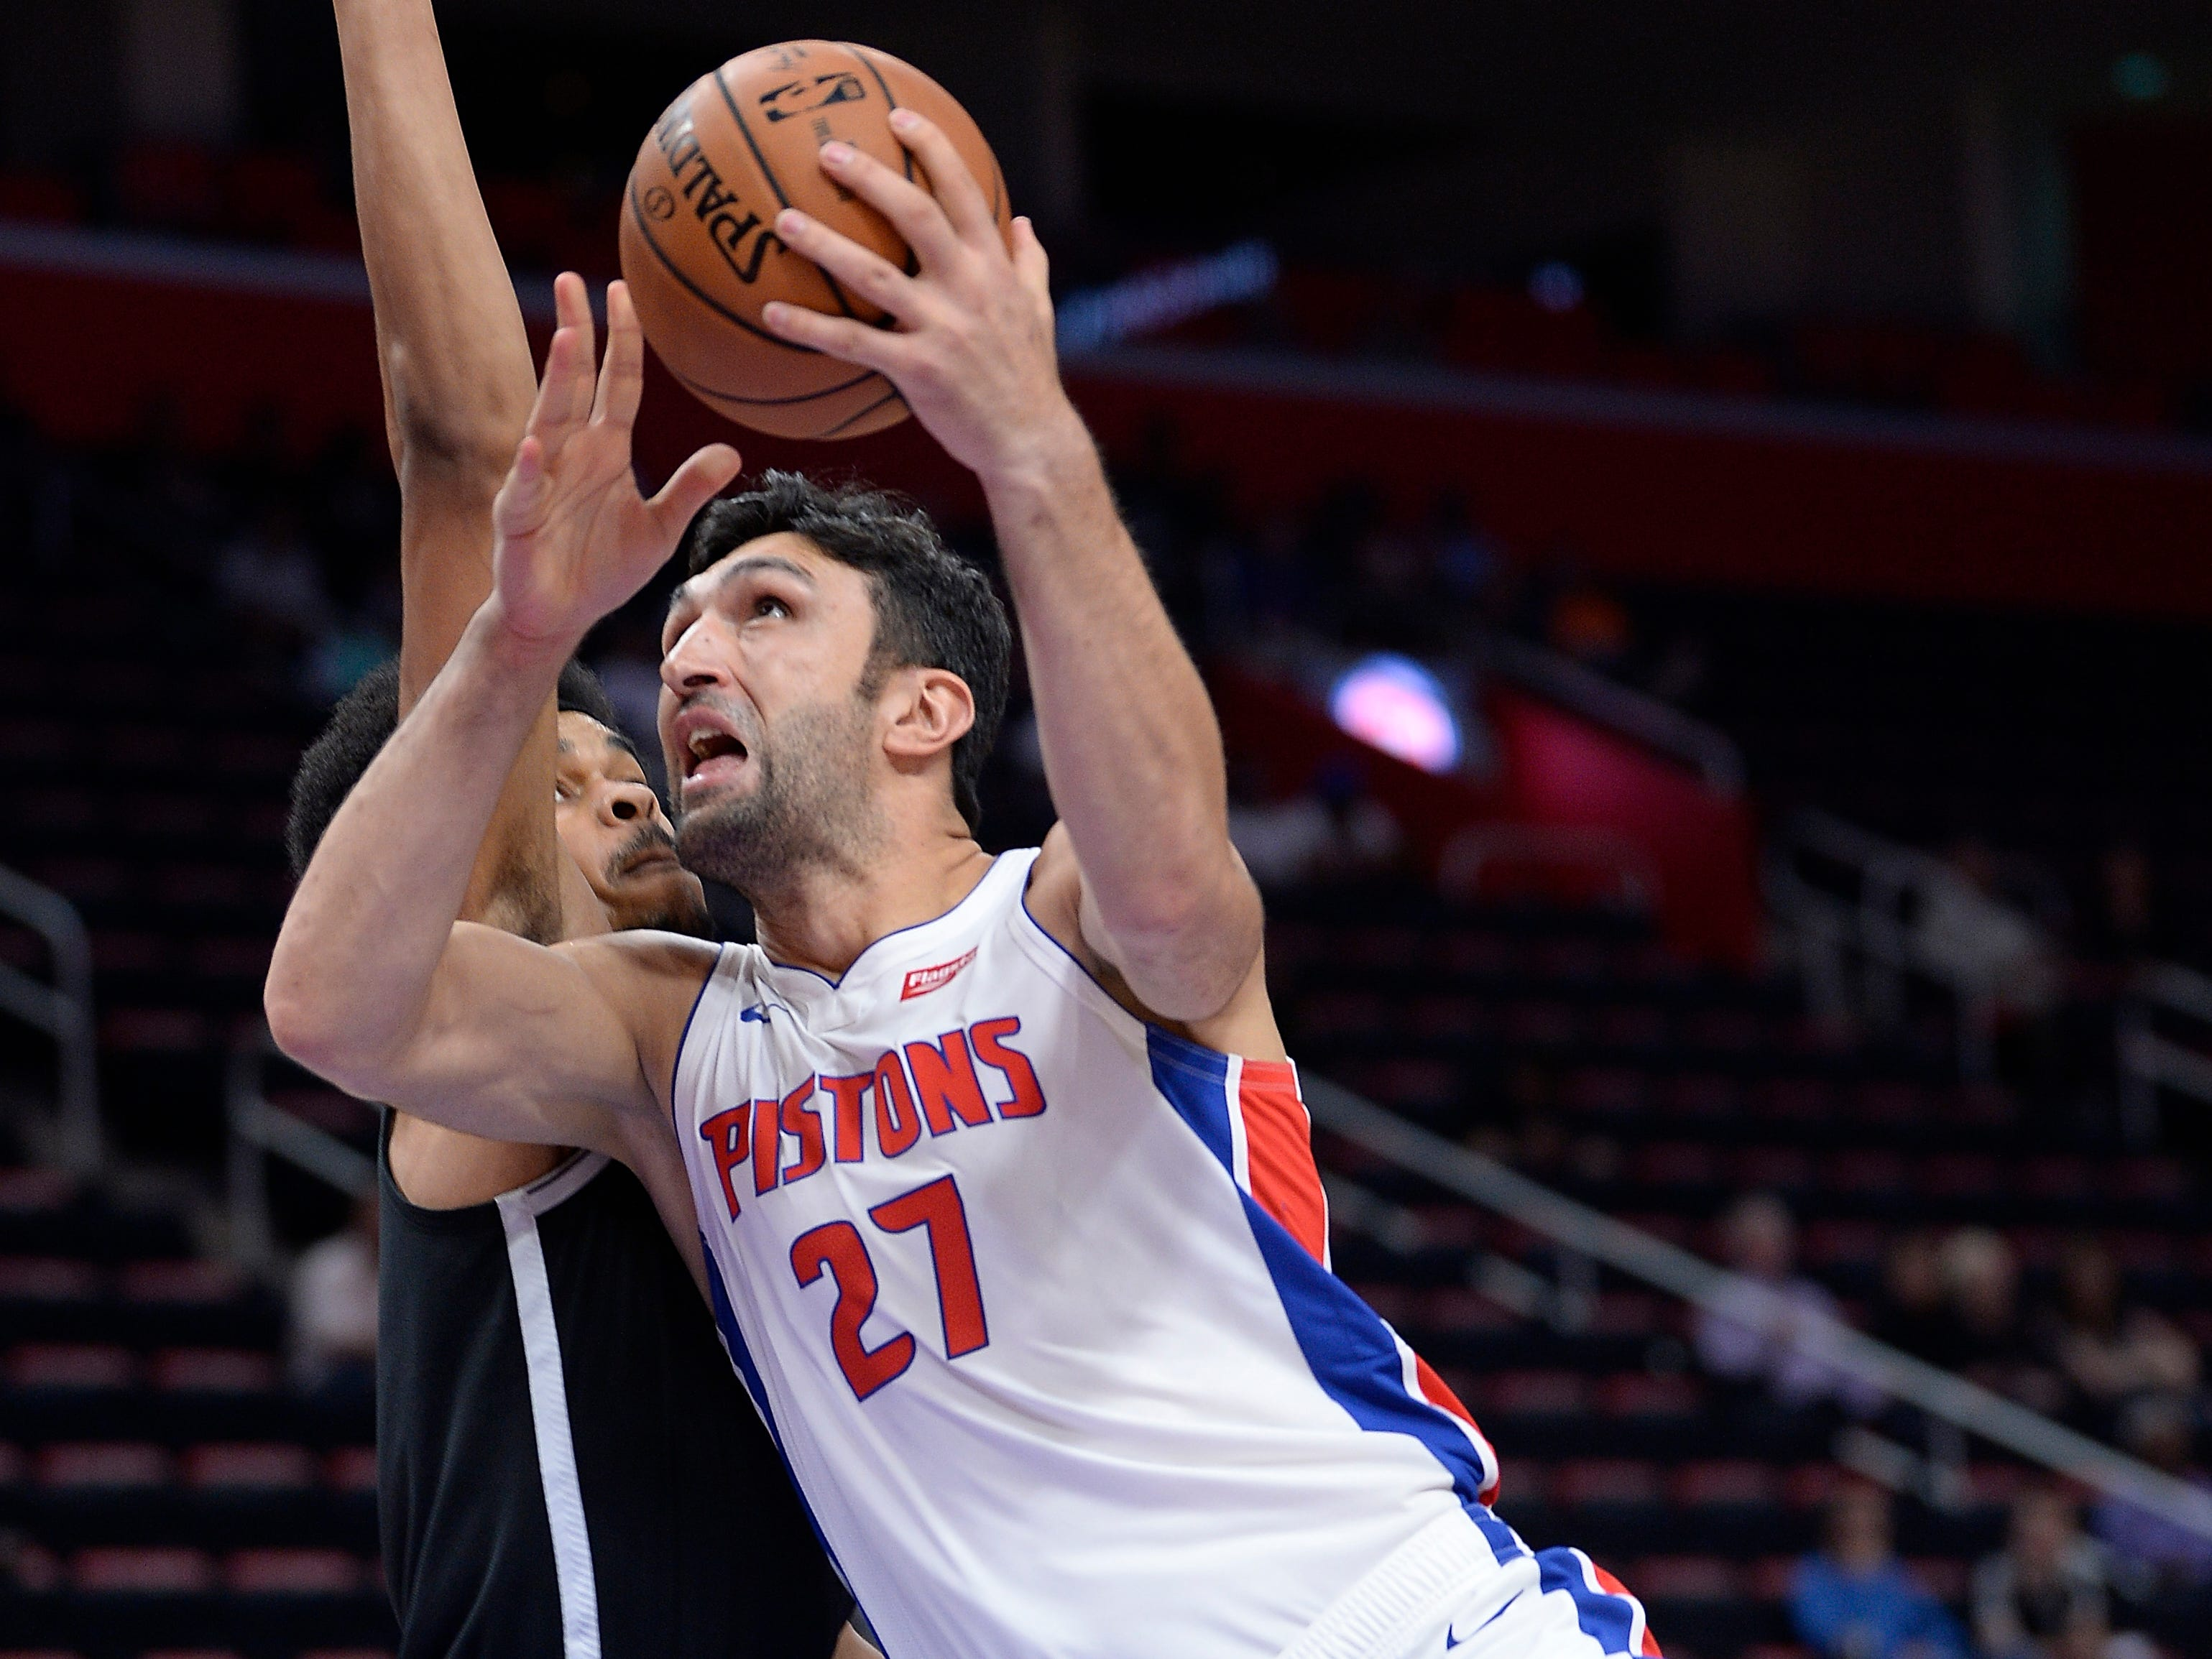 Zaza Pachulia -- Stats: 4.4 pts, 4.4 rebs in 32 games. Age: 34. The veteran has provided a good influence in the locker room as a leader and has been a nice backup option behind Drummond. Casey lauds his screens and his mid-range jump shot helps him to extend the defense. Grade: C